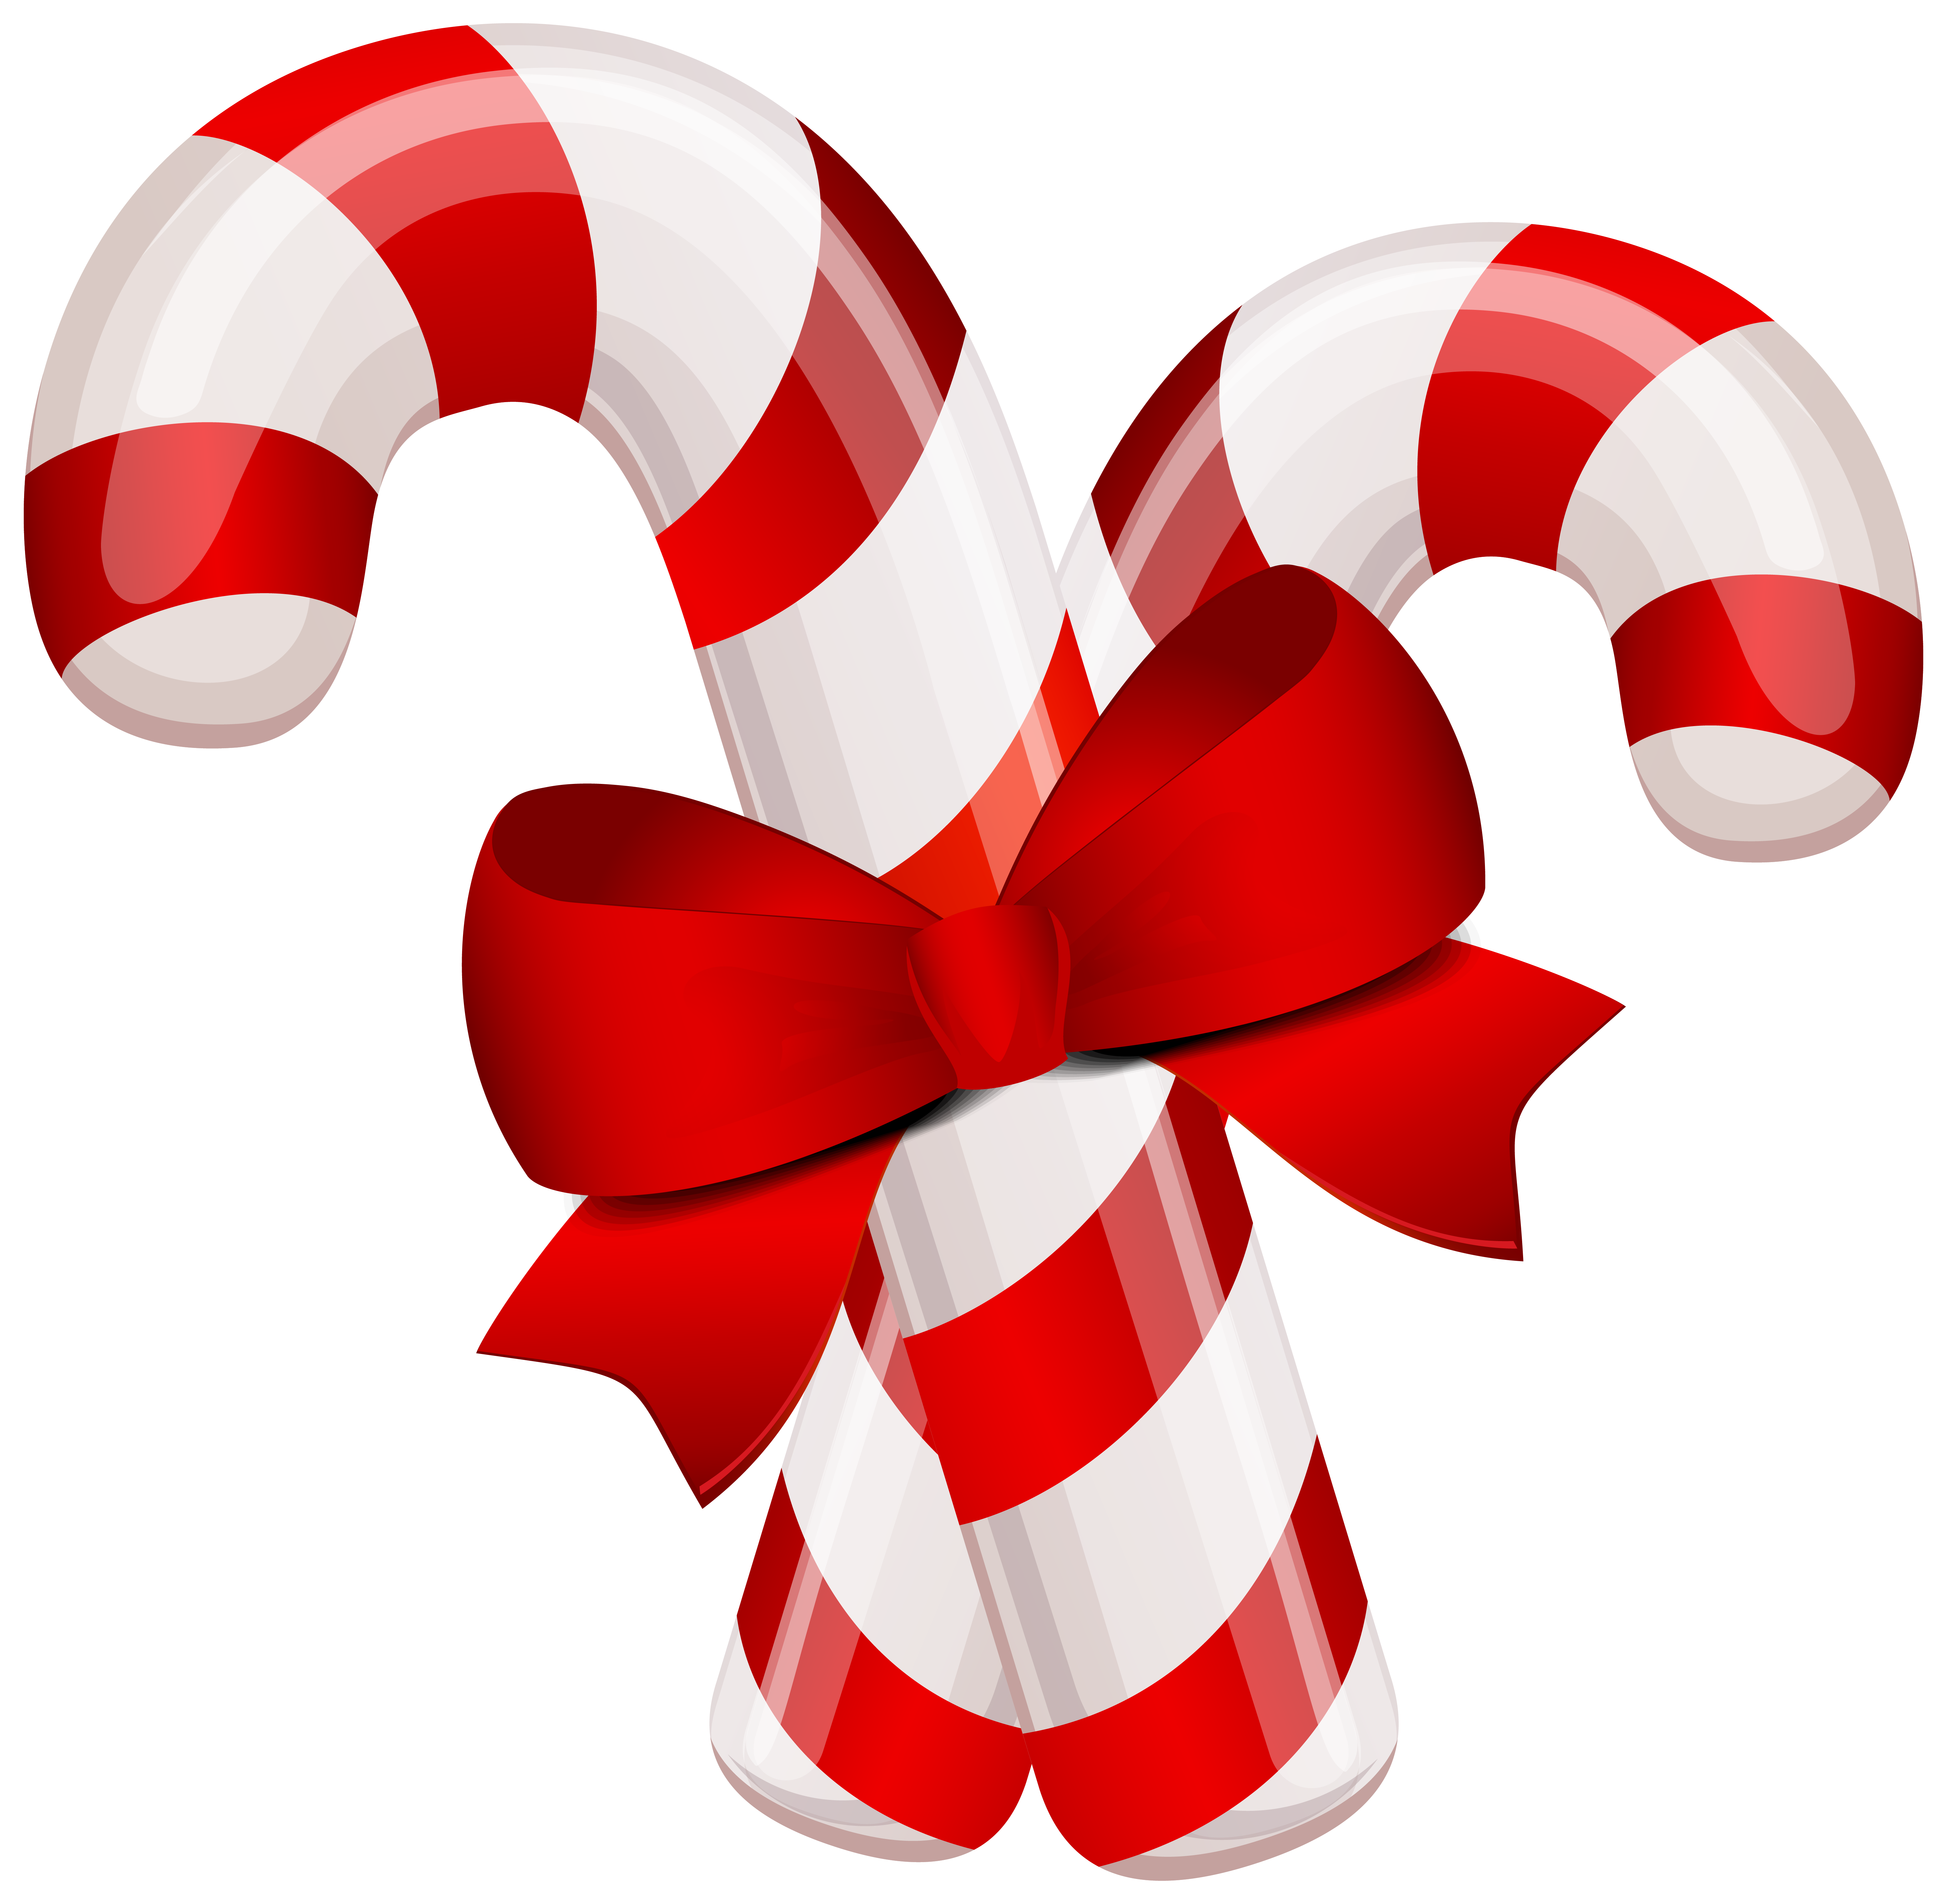 Candy cane clipart png. Christmas classic canes image